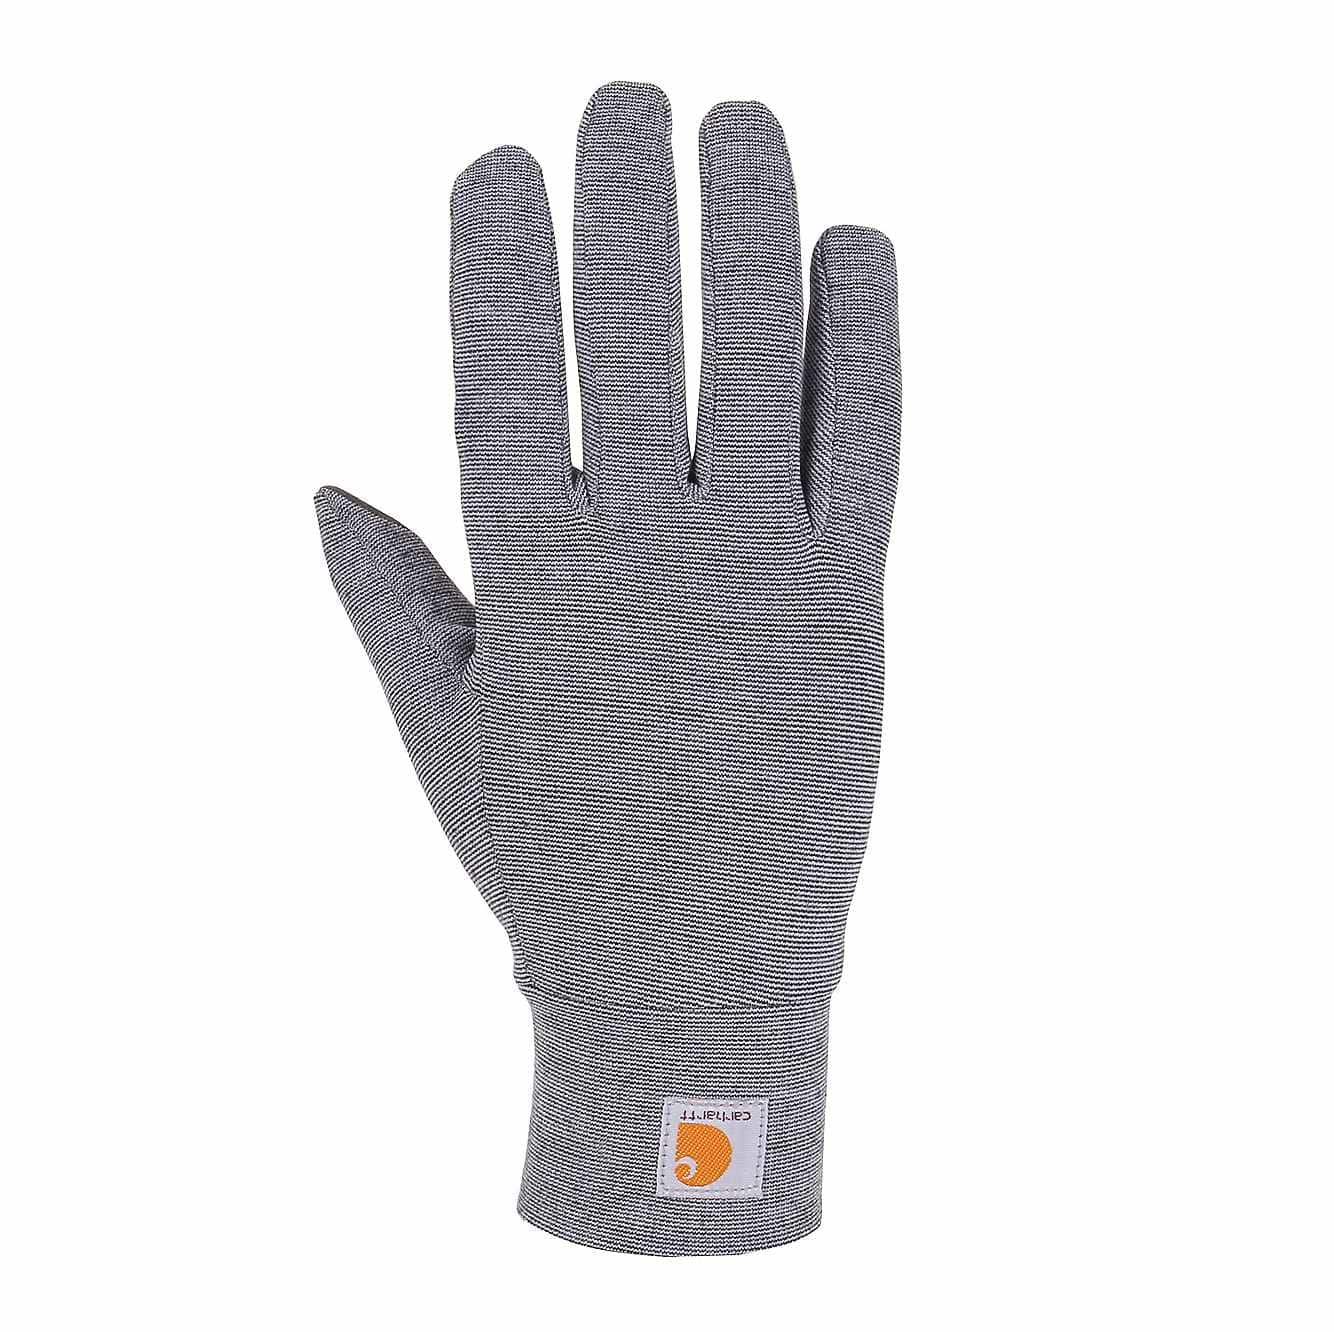 Picture of Carhartt Force® Heavyweight Liner Knit Glove in Gray